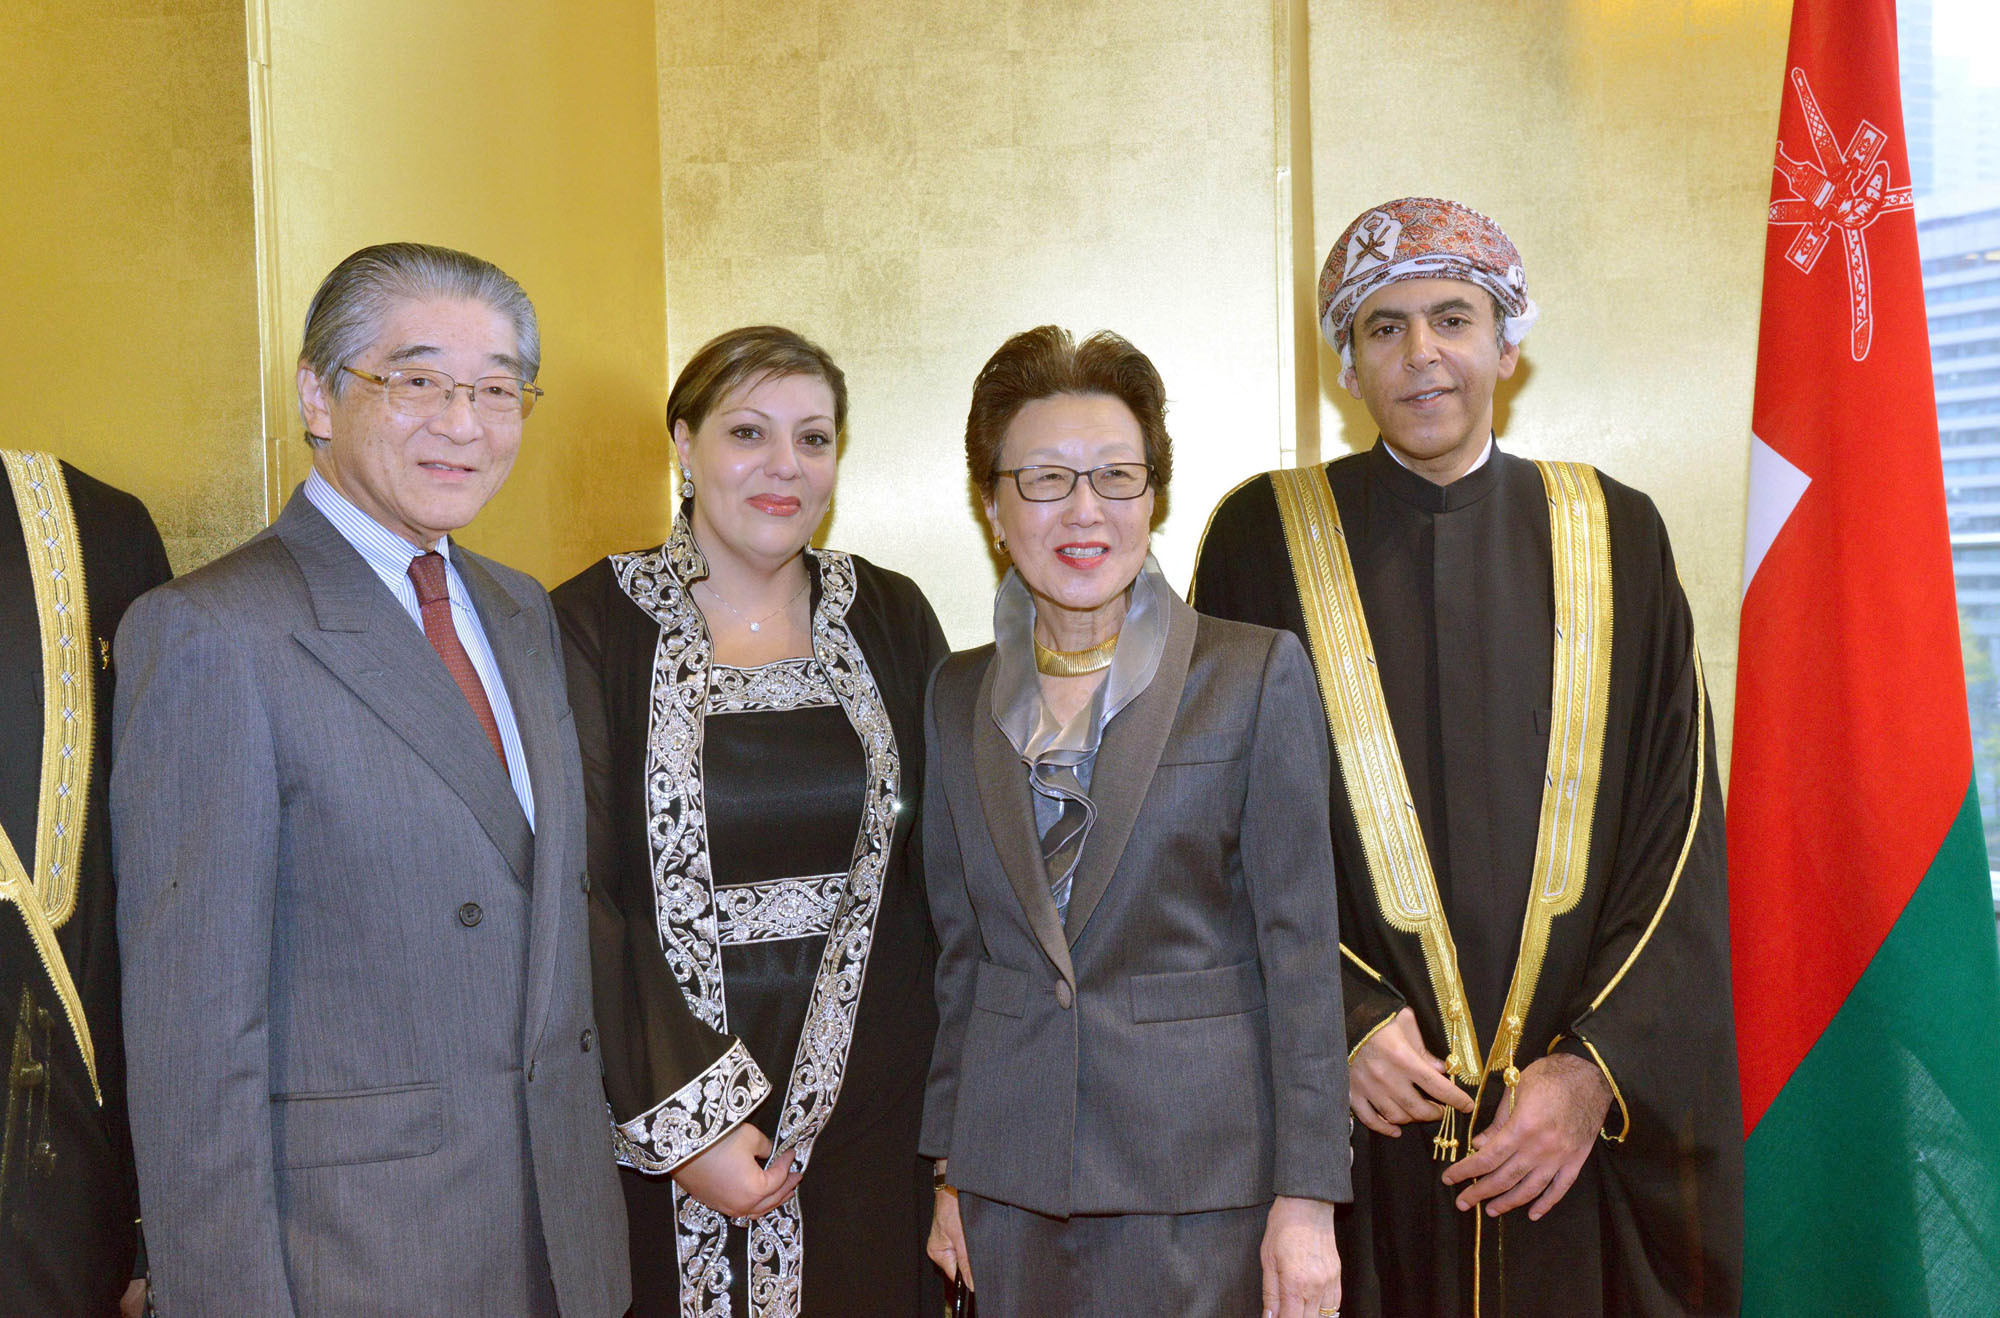 Oman's Ambassador Khalid Al-Muslahi (right) and his wife Abeer A. Aisha (second from left) welcome Hisanaga Shimazu (left) and his wife Takako (the fifth and youngest daughter of Emperor Showa) during a reception to celebrate Oman's 46th national day at the Palace Hotel, Tokyo on Nov. 24. |  OMAN EMBASSY